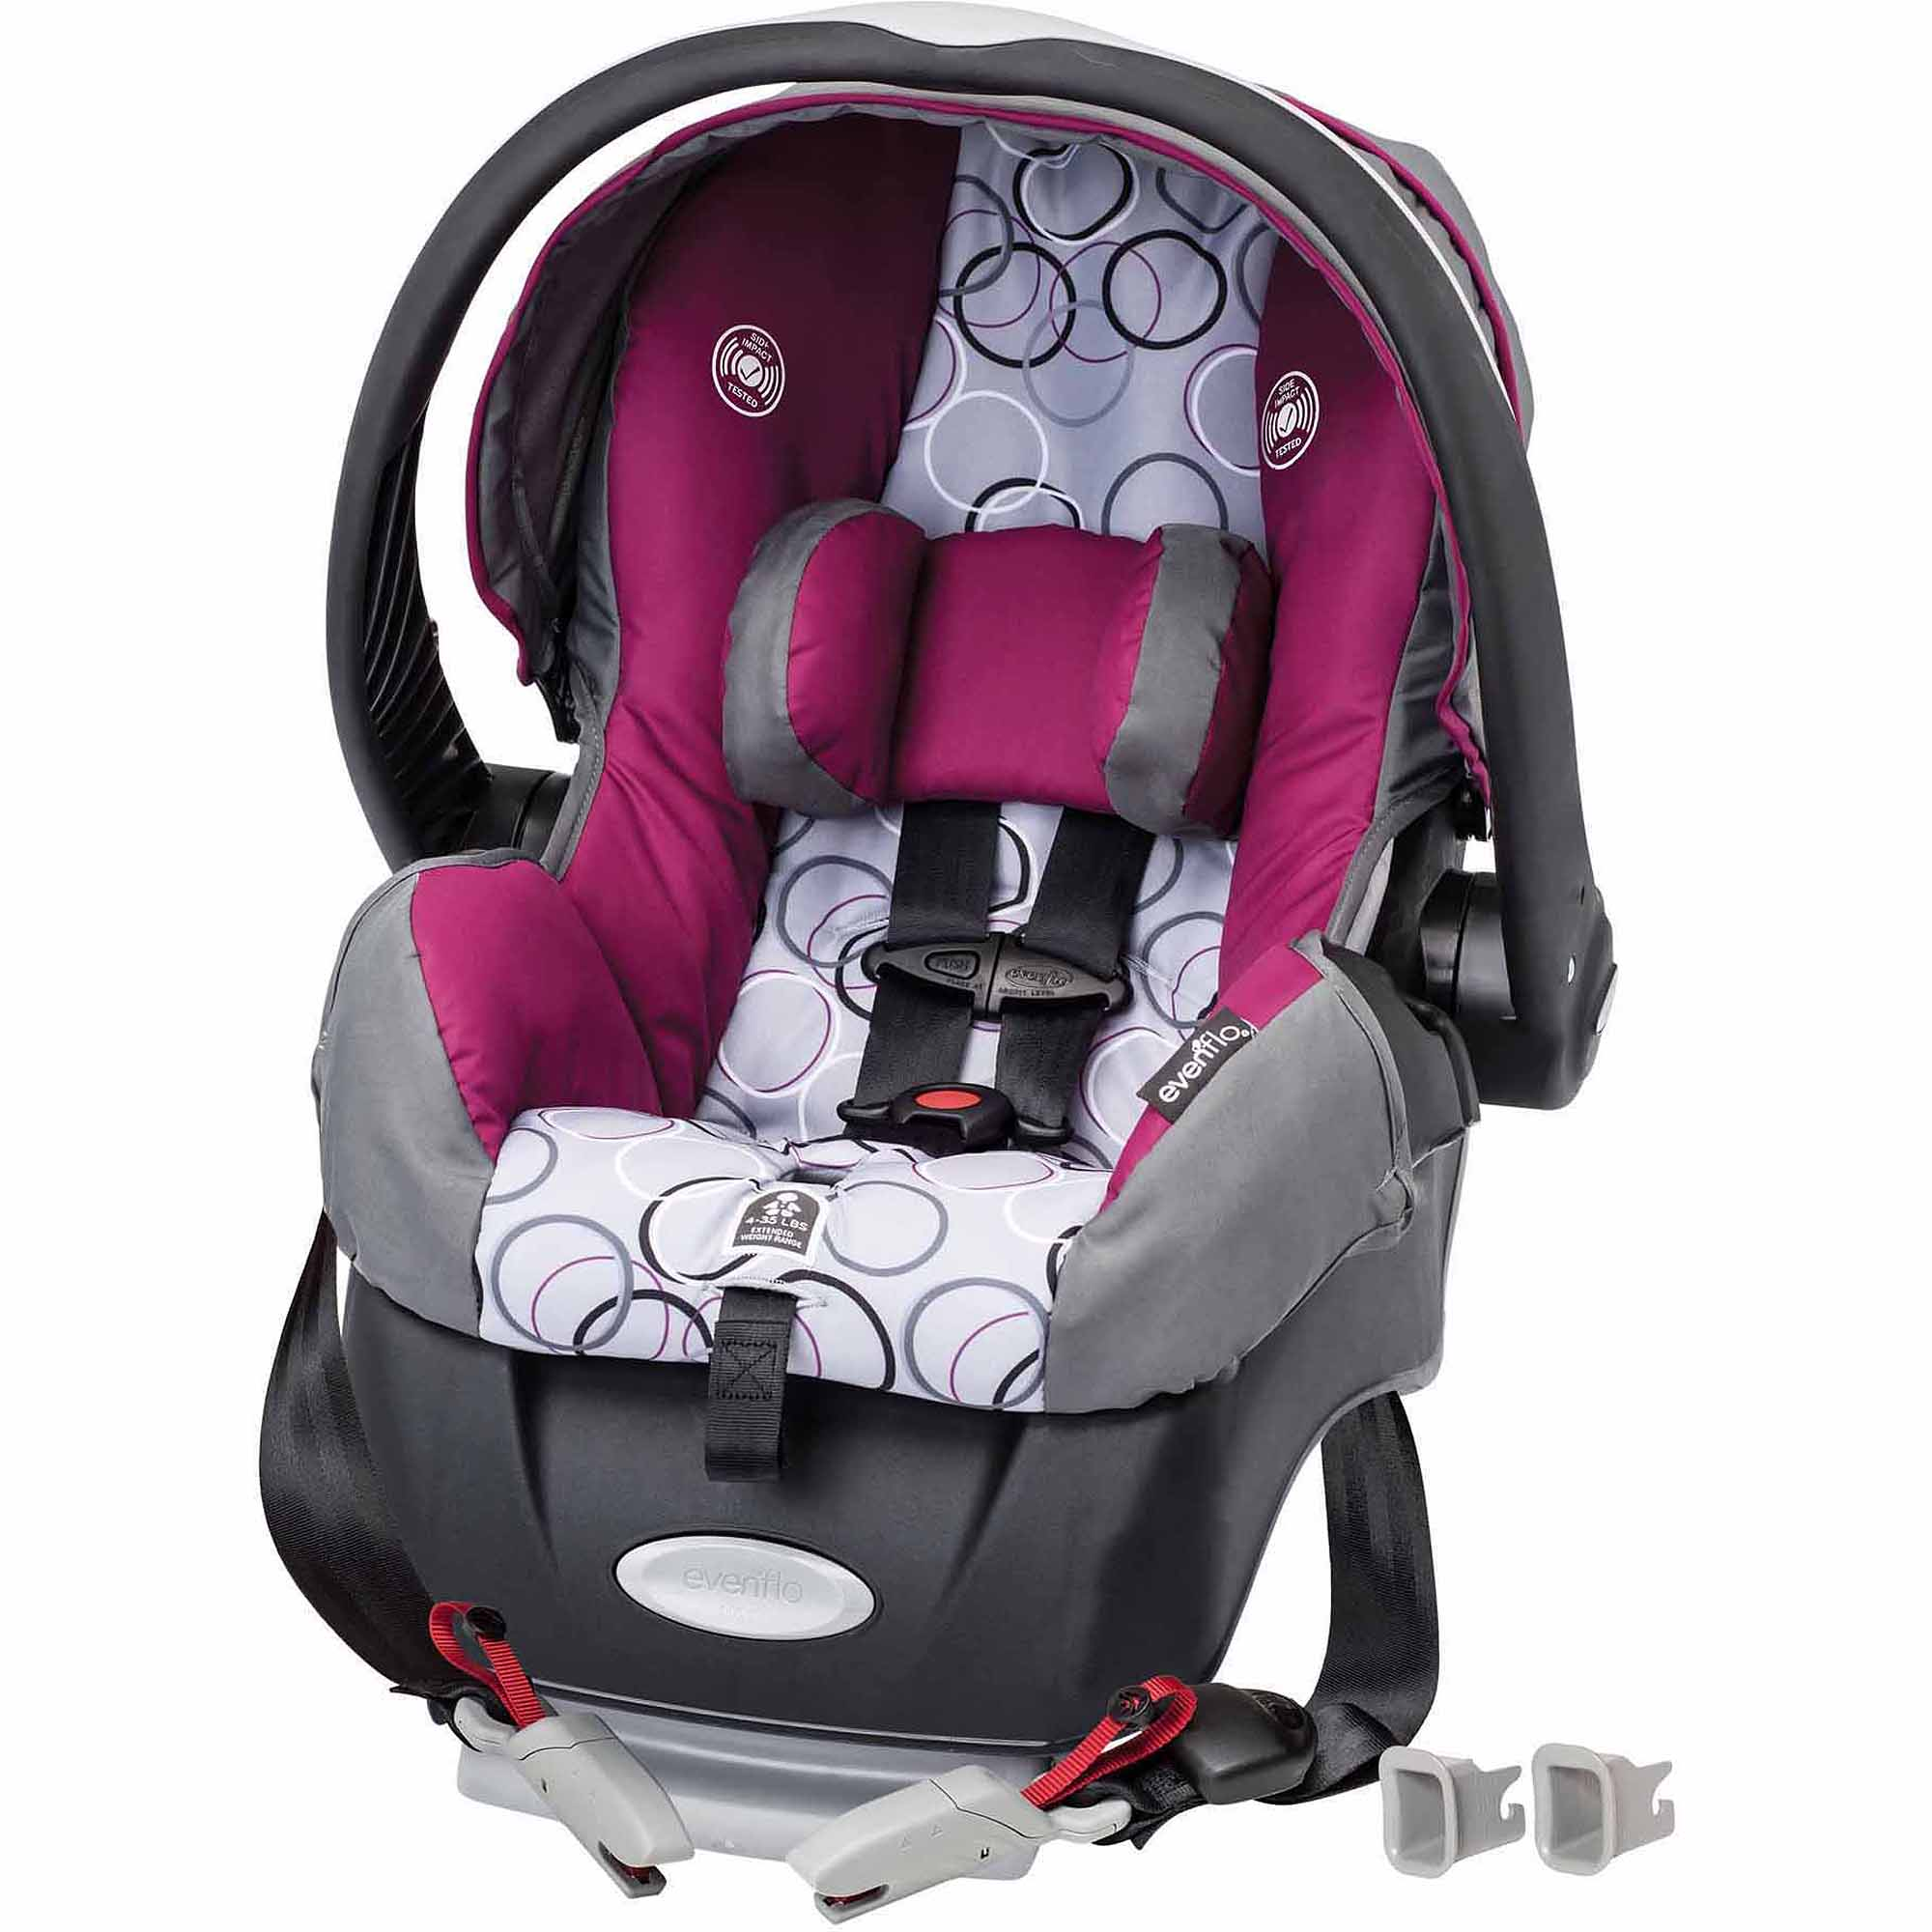 Evenflo Embrace Select Infant Car Seat w/ SureSafe Installation, Choose Your Pattern